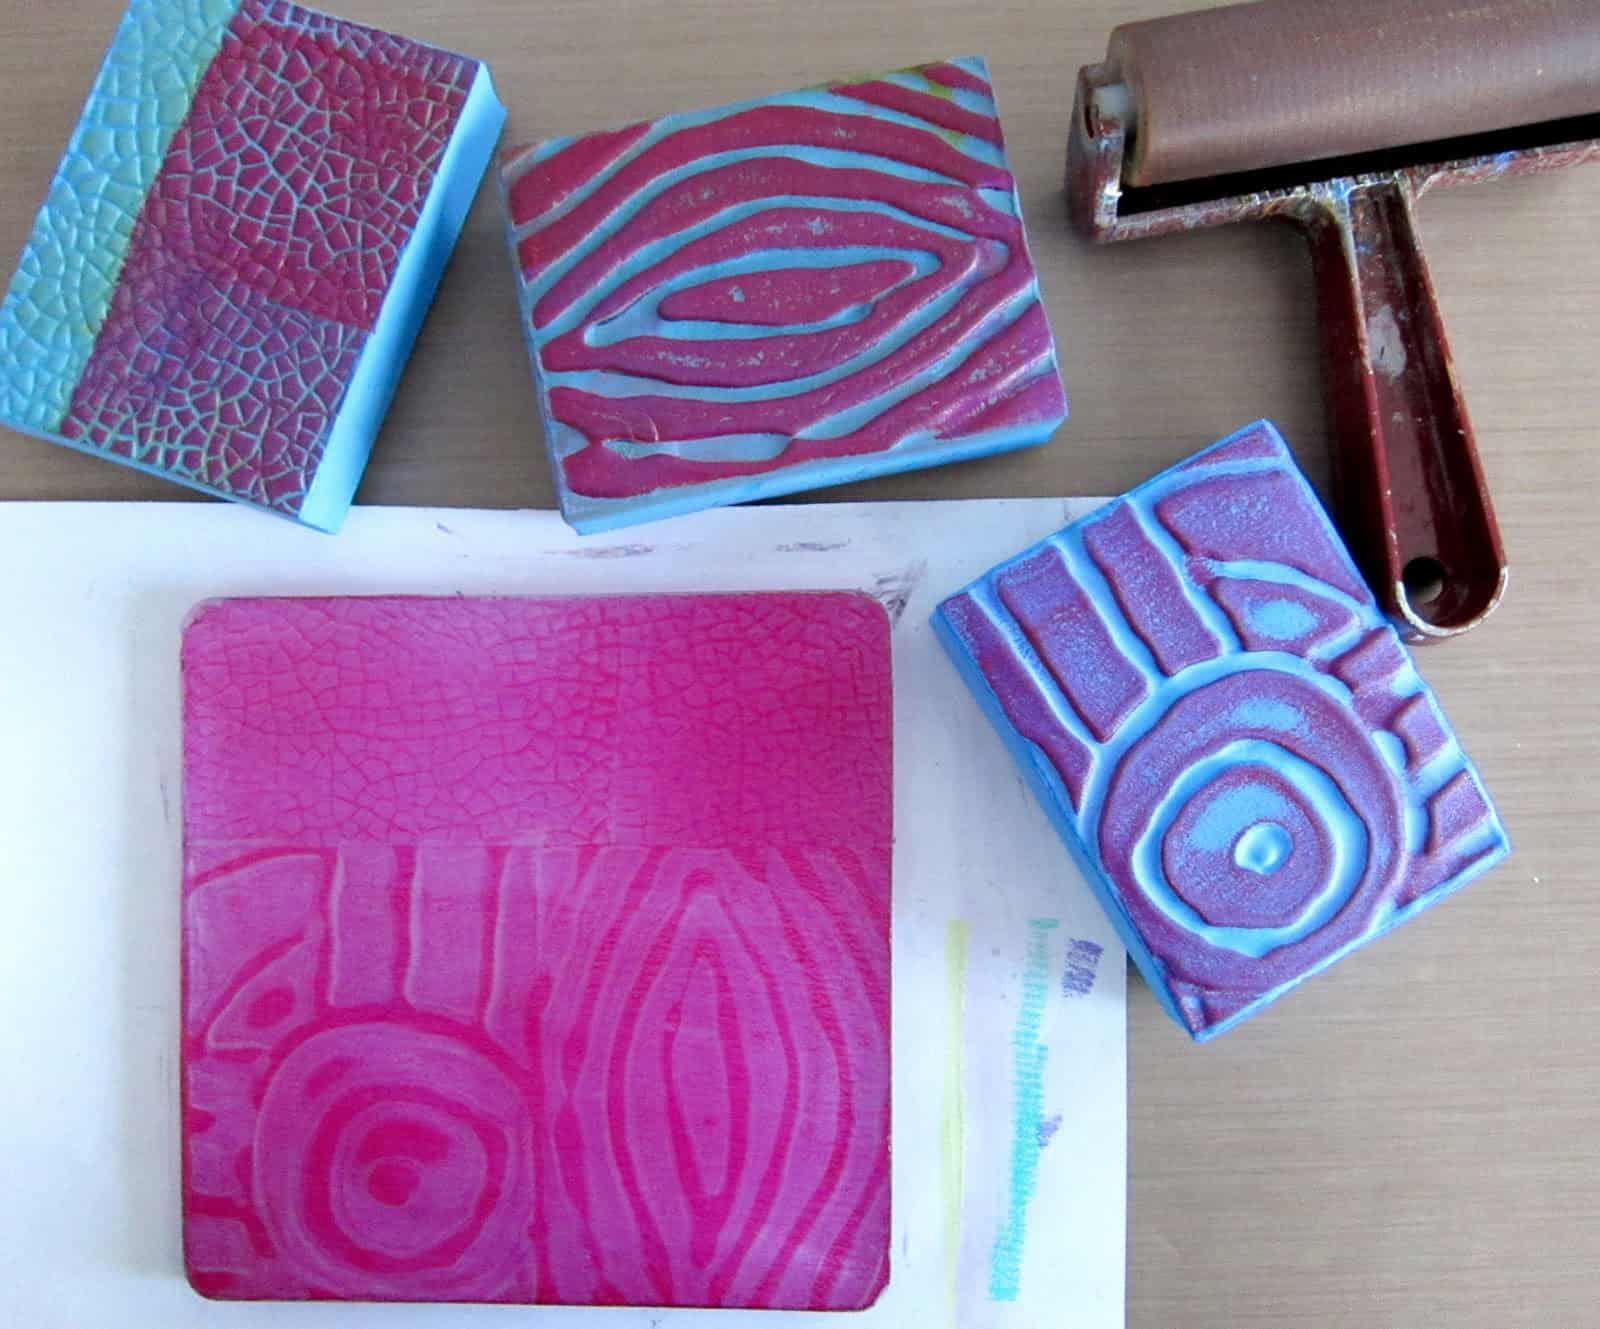 Texture fabric stamps